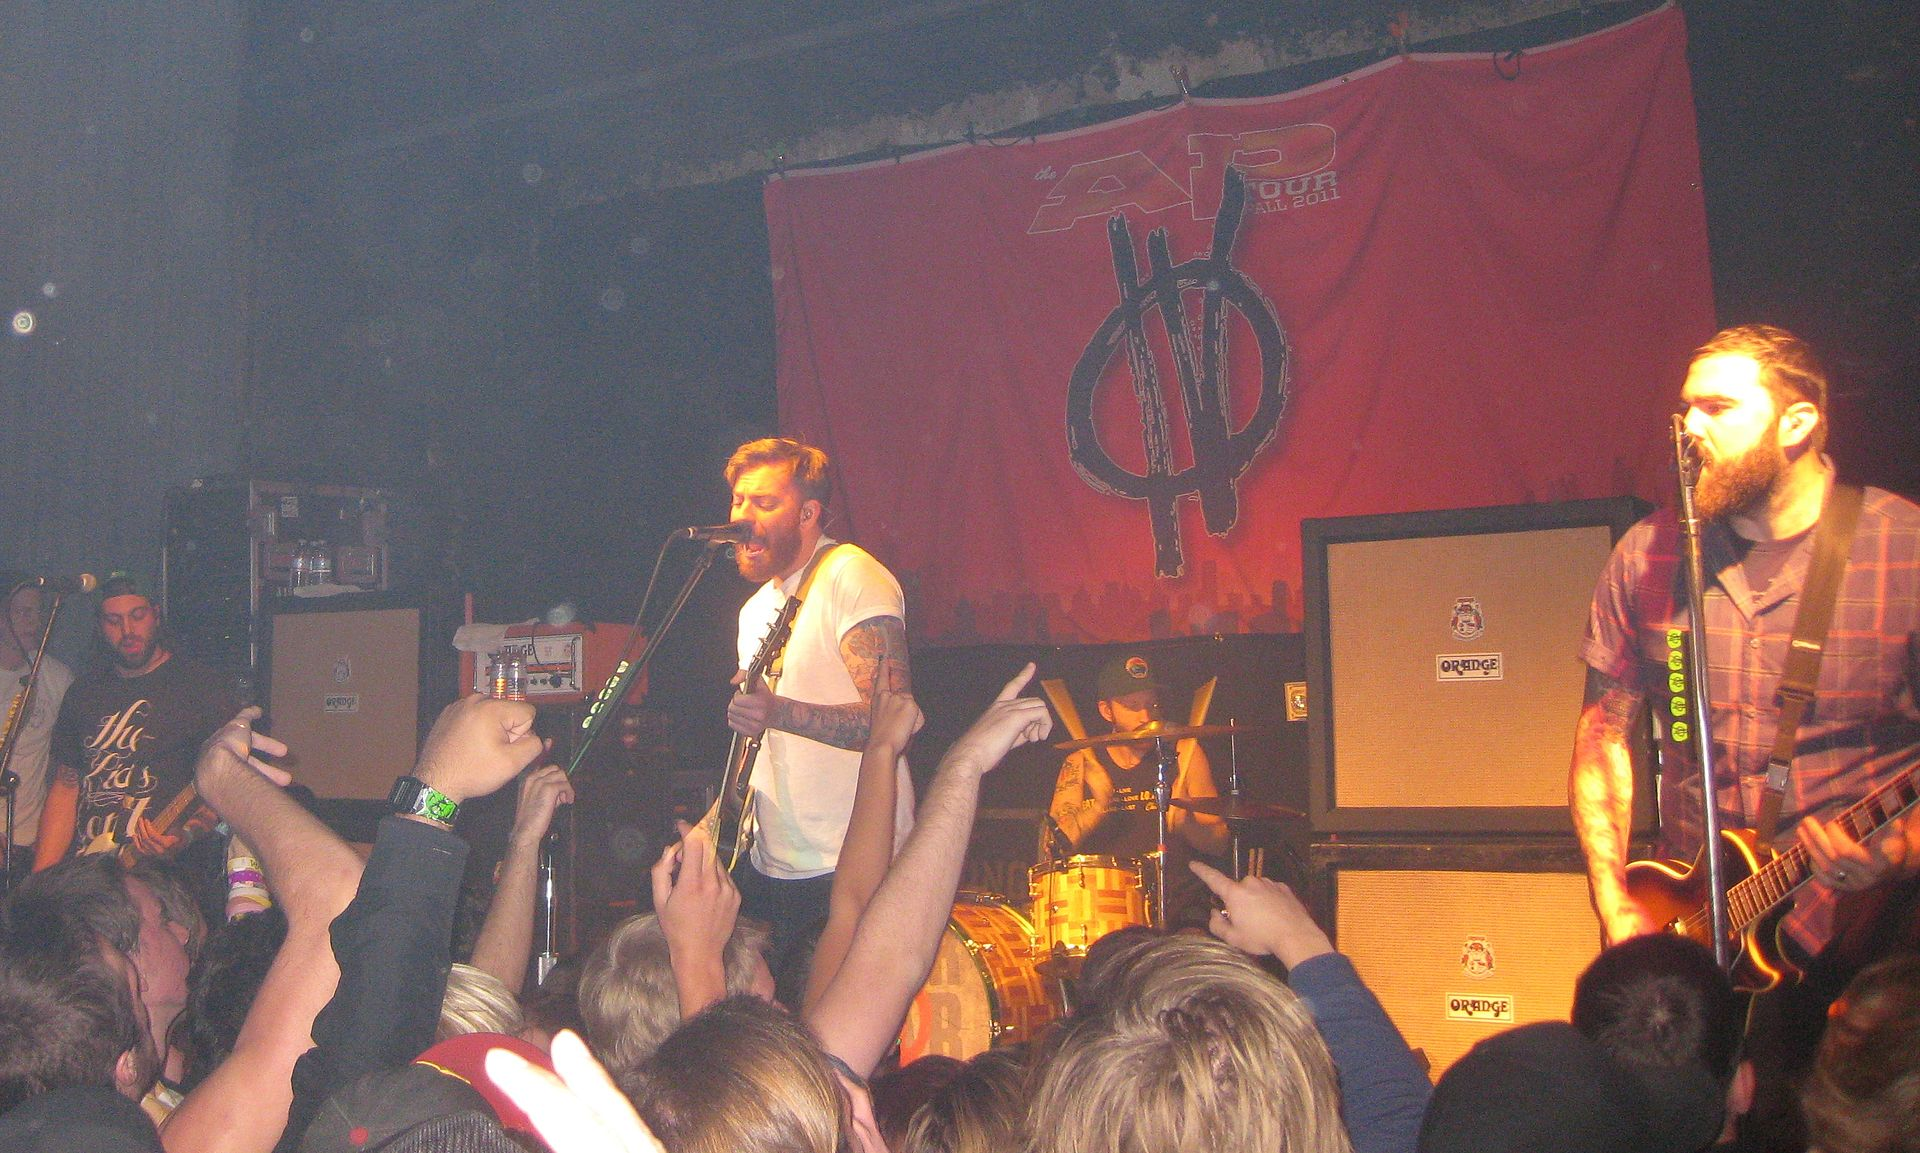 Four Year Strong in 2011. From left to right: Weiss, Day, Massucco, and O'Connor.